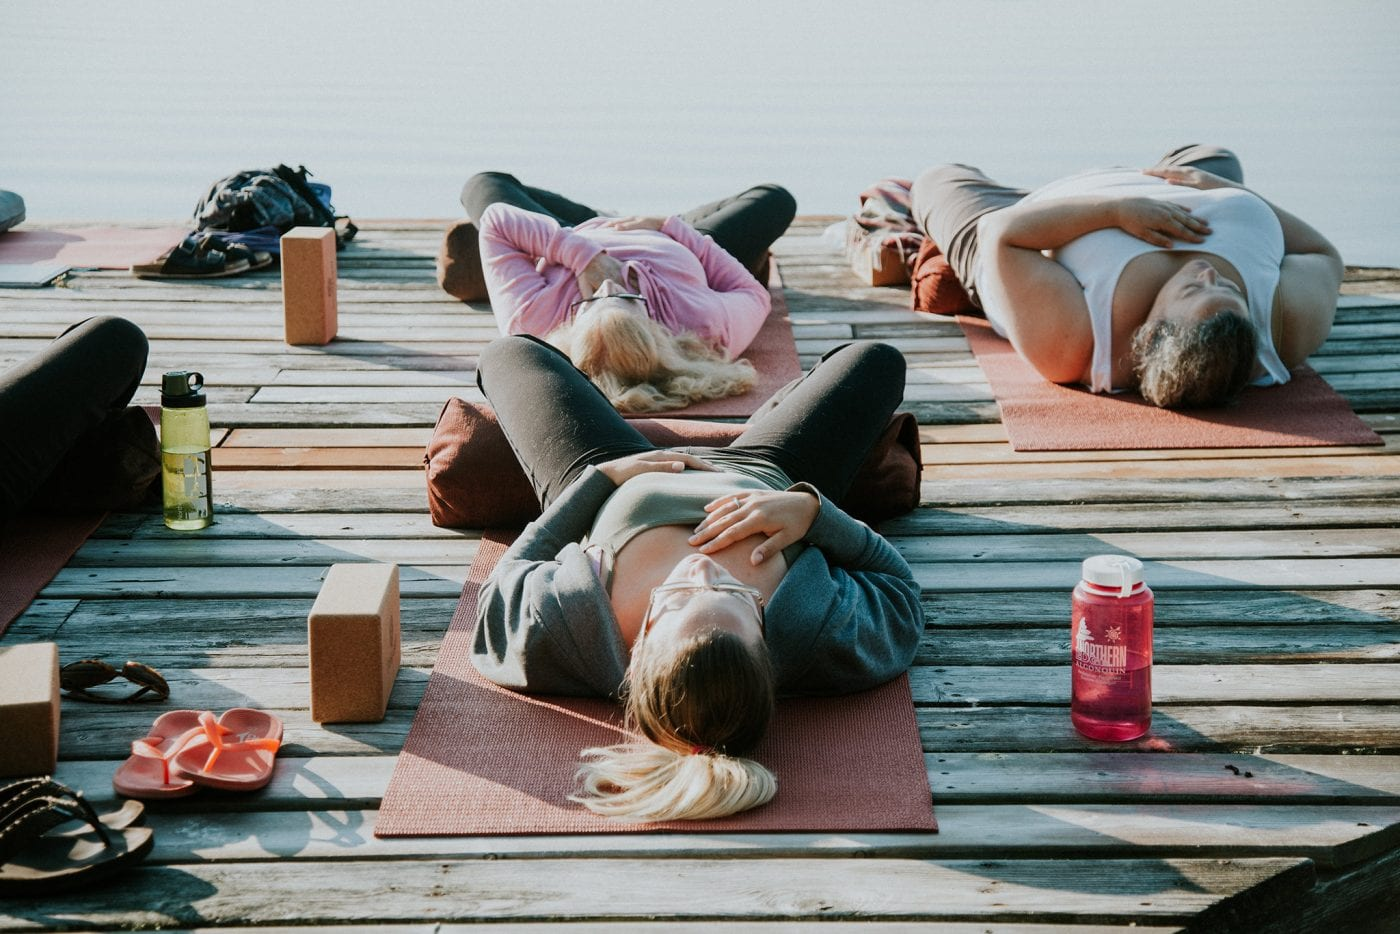 Laying on the dock and doing yoga with a group